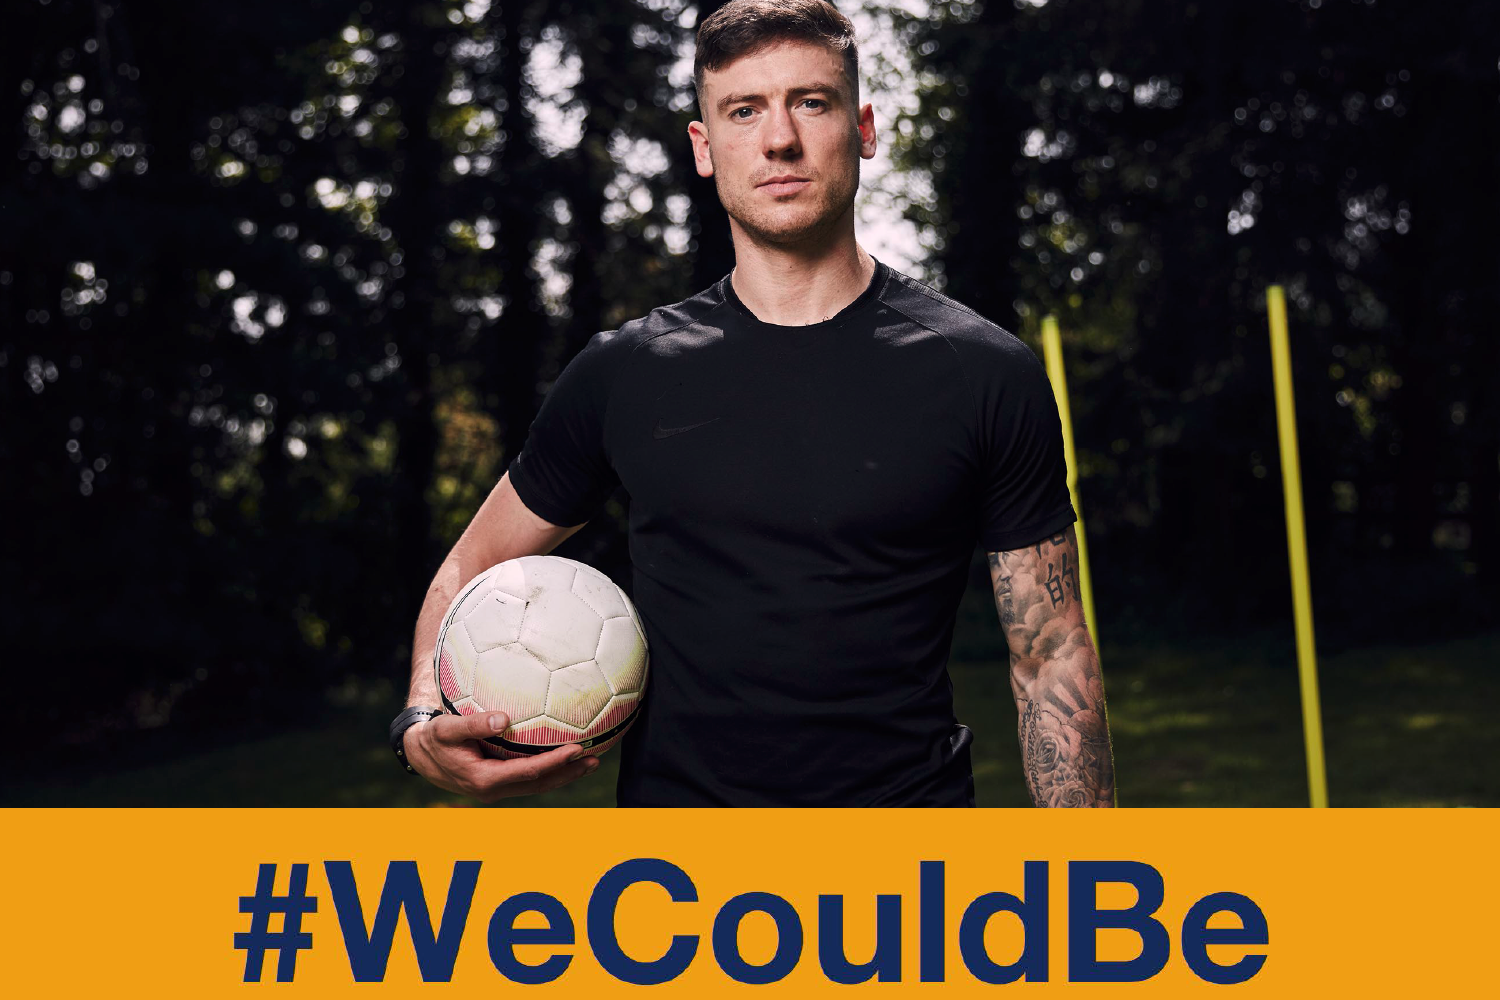 #WeCouldBe - Jack Rutter supports Disability Sports Campaign